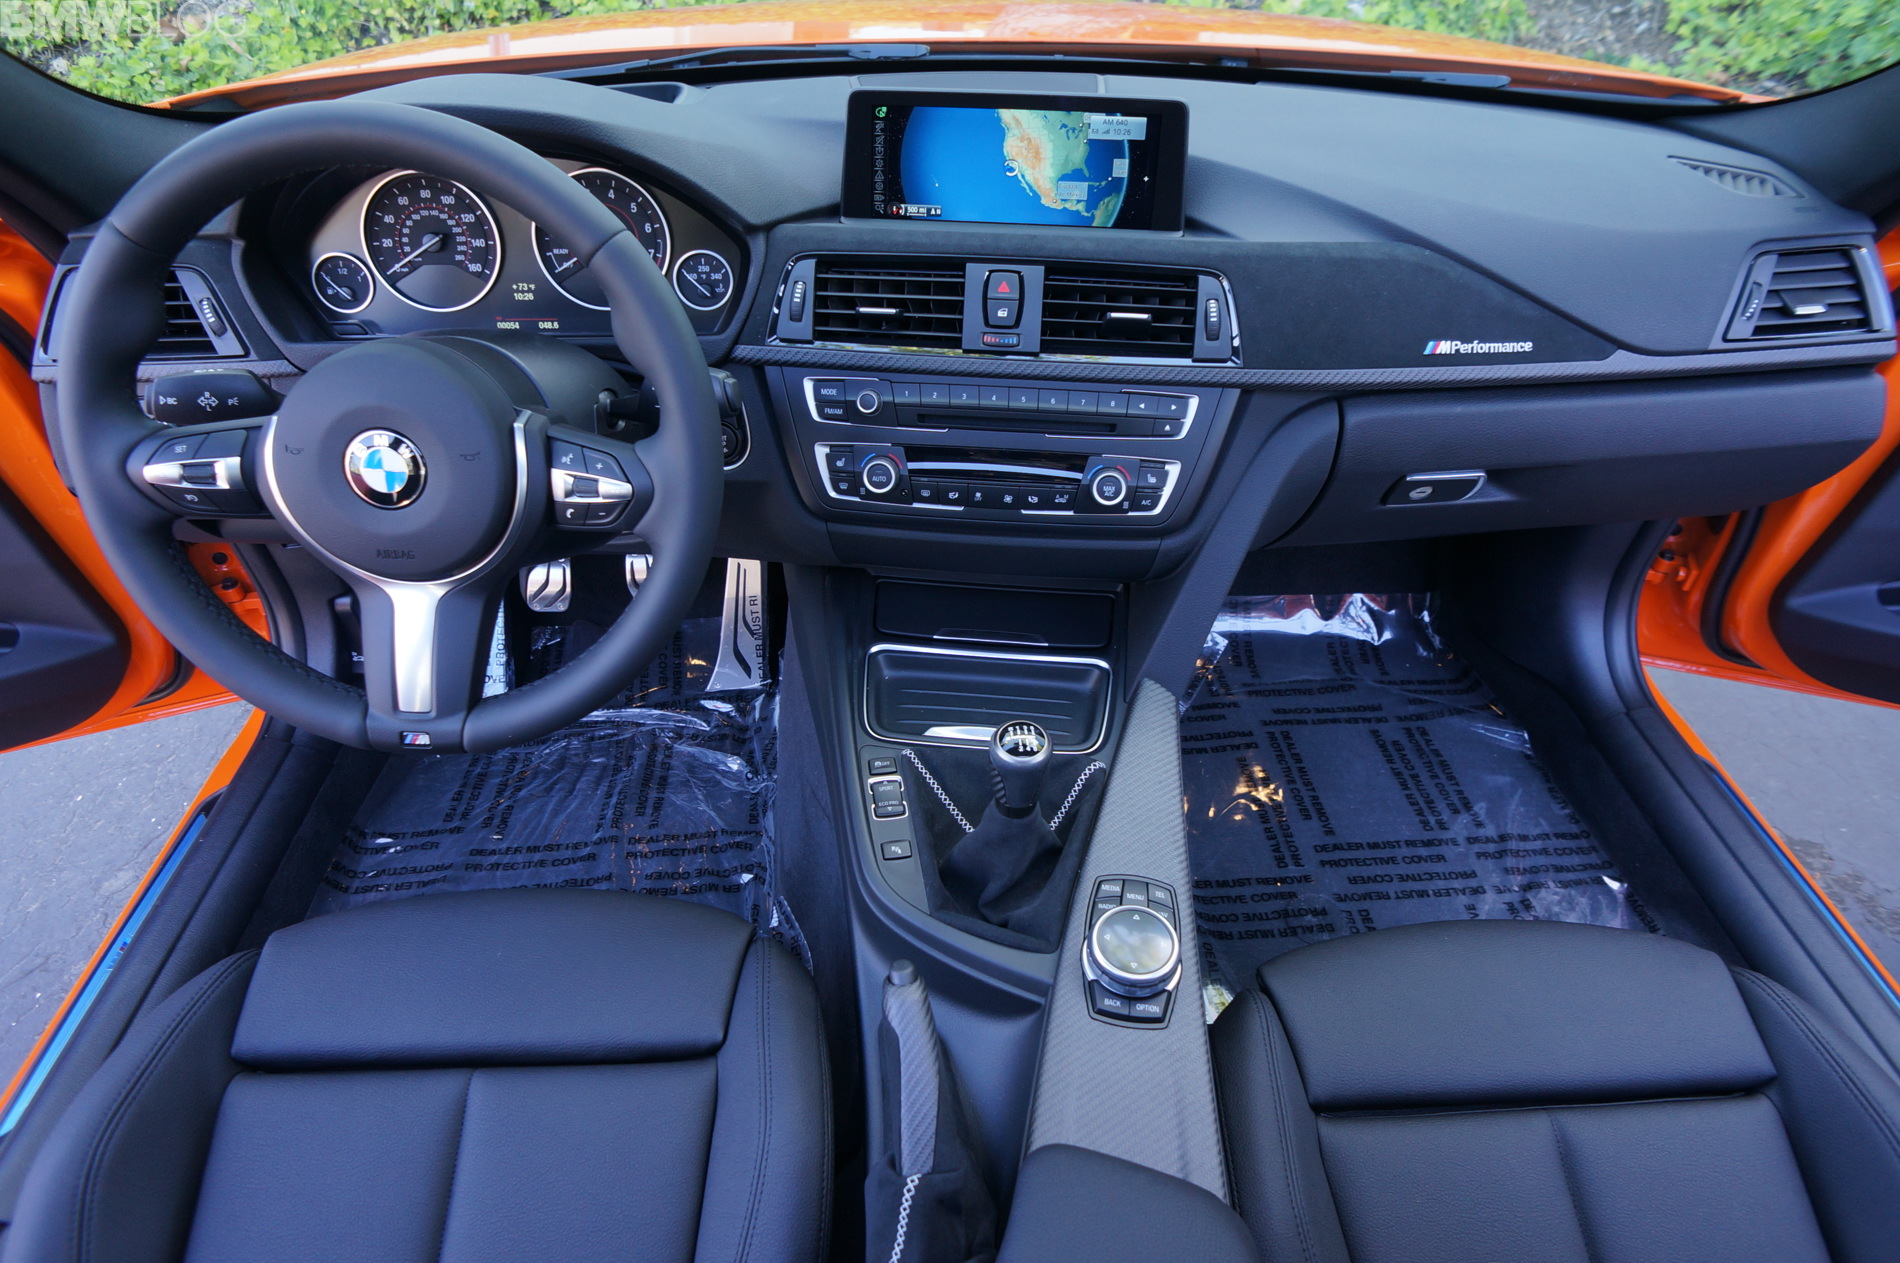 bmw 335i manual transmission review best setting instruction guide u2022 rh ourk9 co 2013 bmw 550i manual transmission 2013 bmw m5 manual transmission for sale